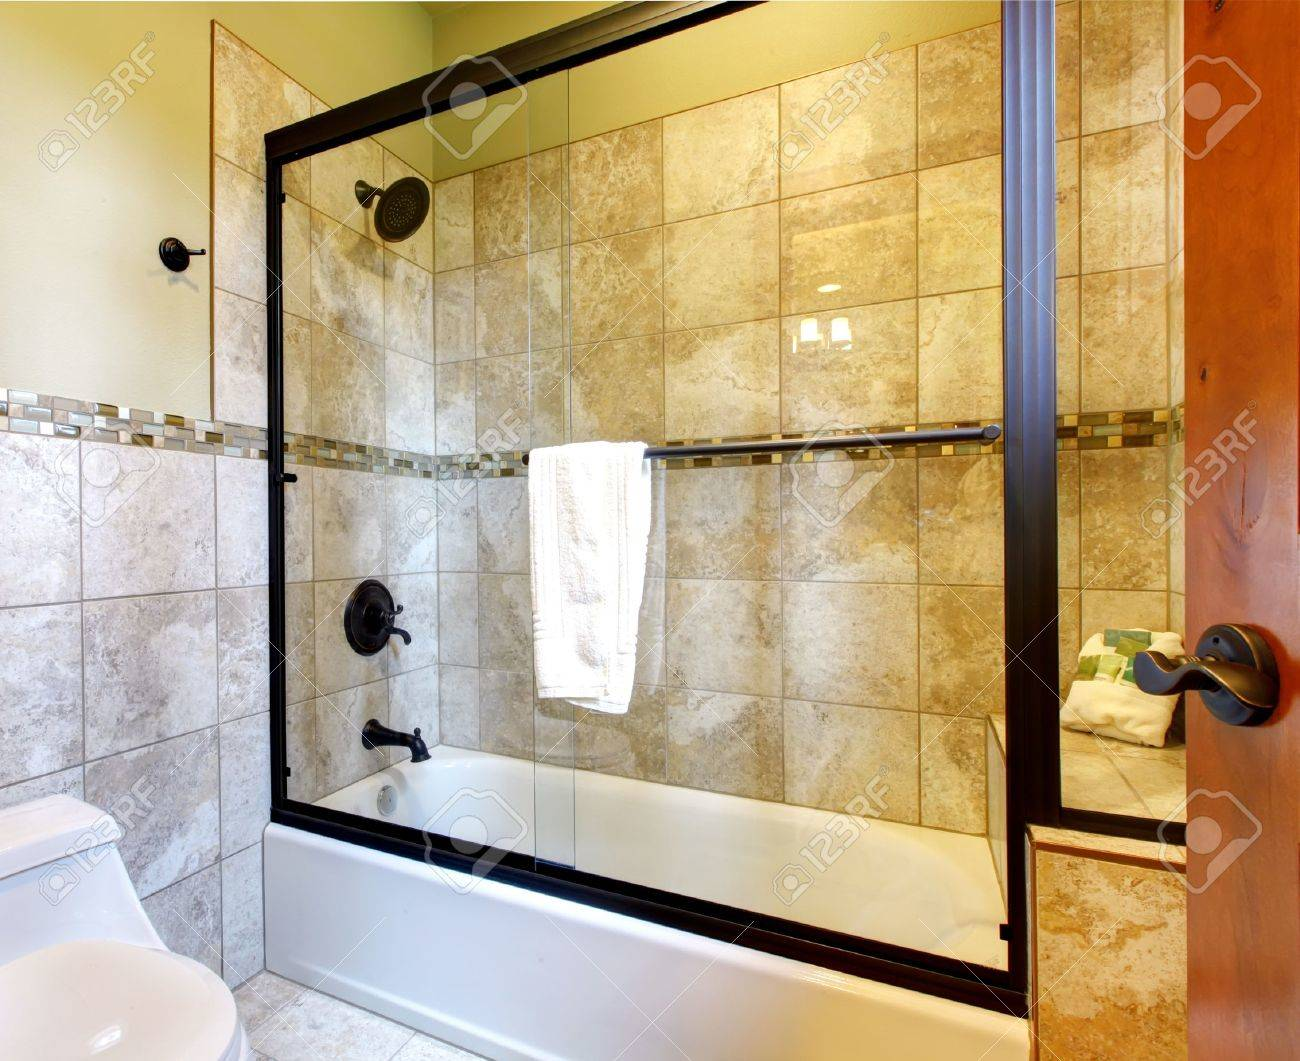 Top Quality Shower Bath Tub With Stone Tiles And Toilet With ...